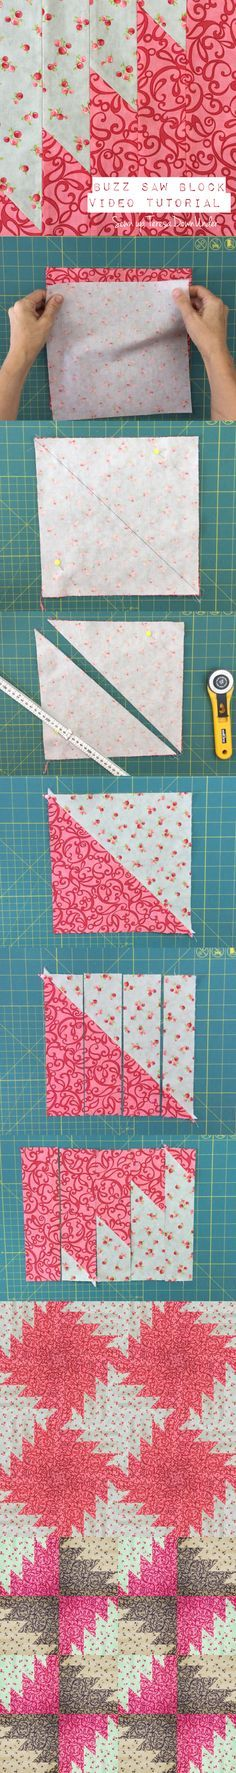 Must see the video!! Super easy   Buzz saw quilt block